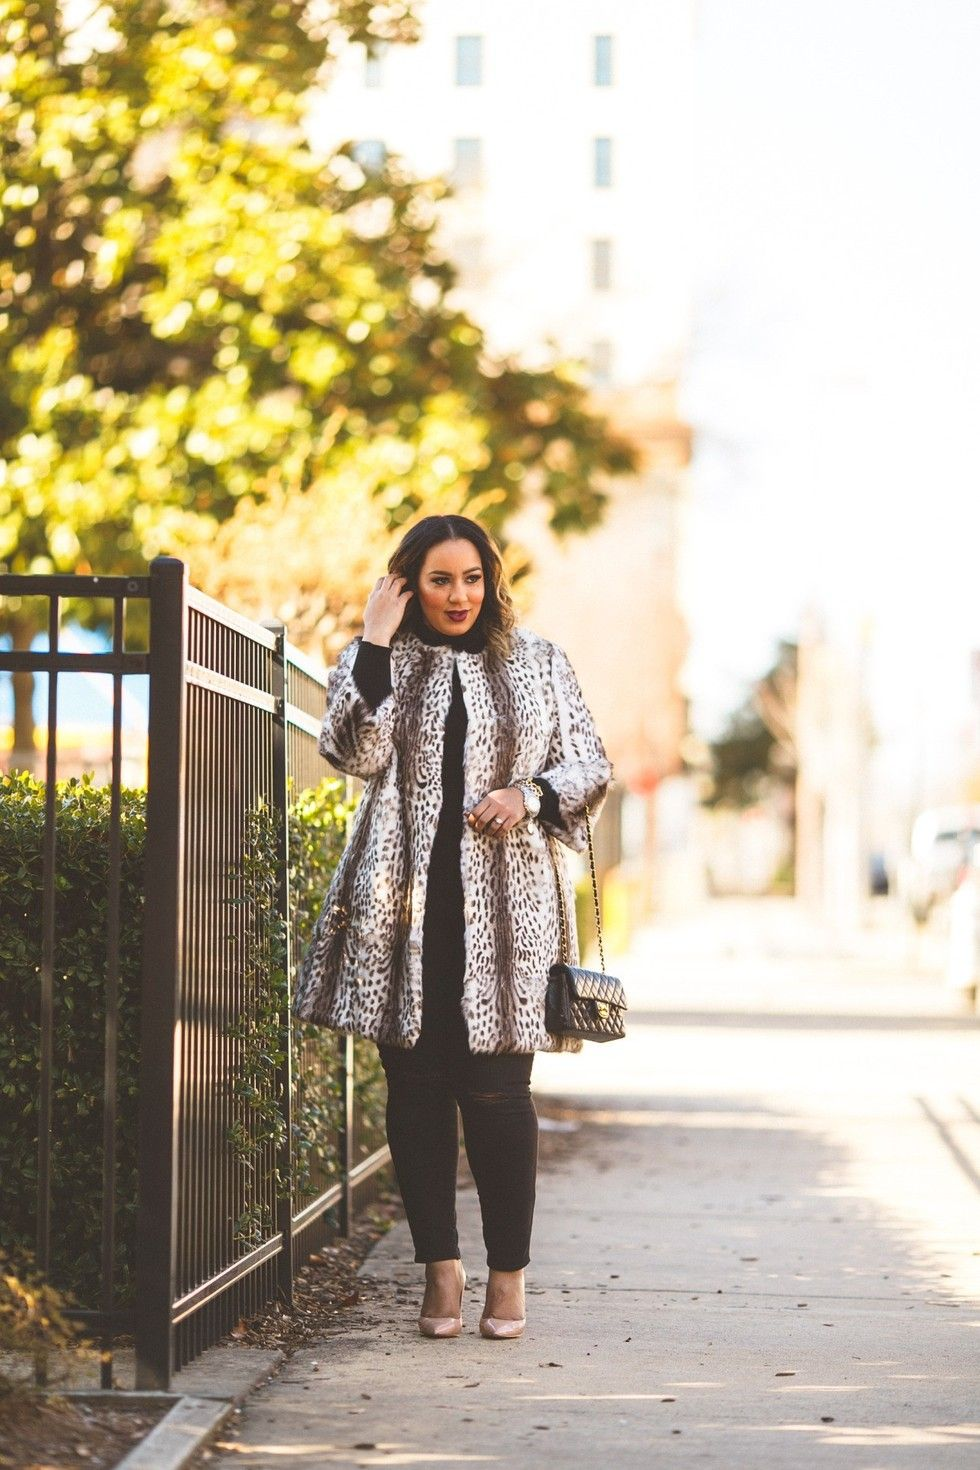 13 Ways To Wear Leopard Print And Look Chic—Not Cheesy